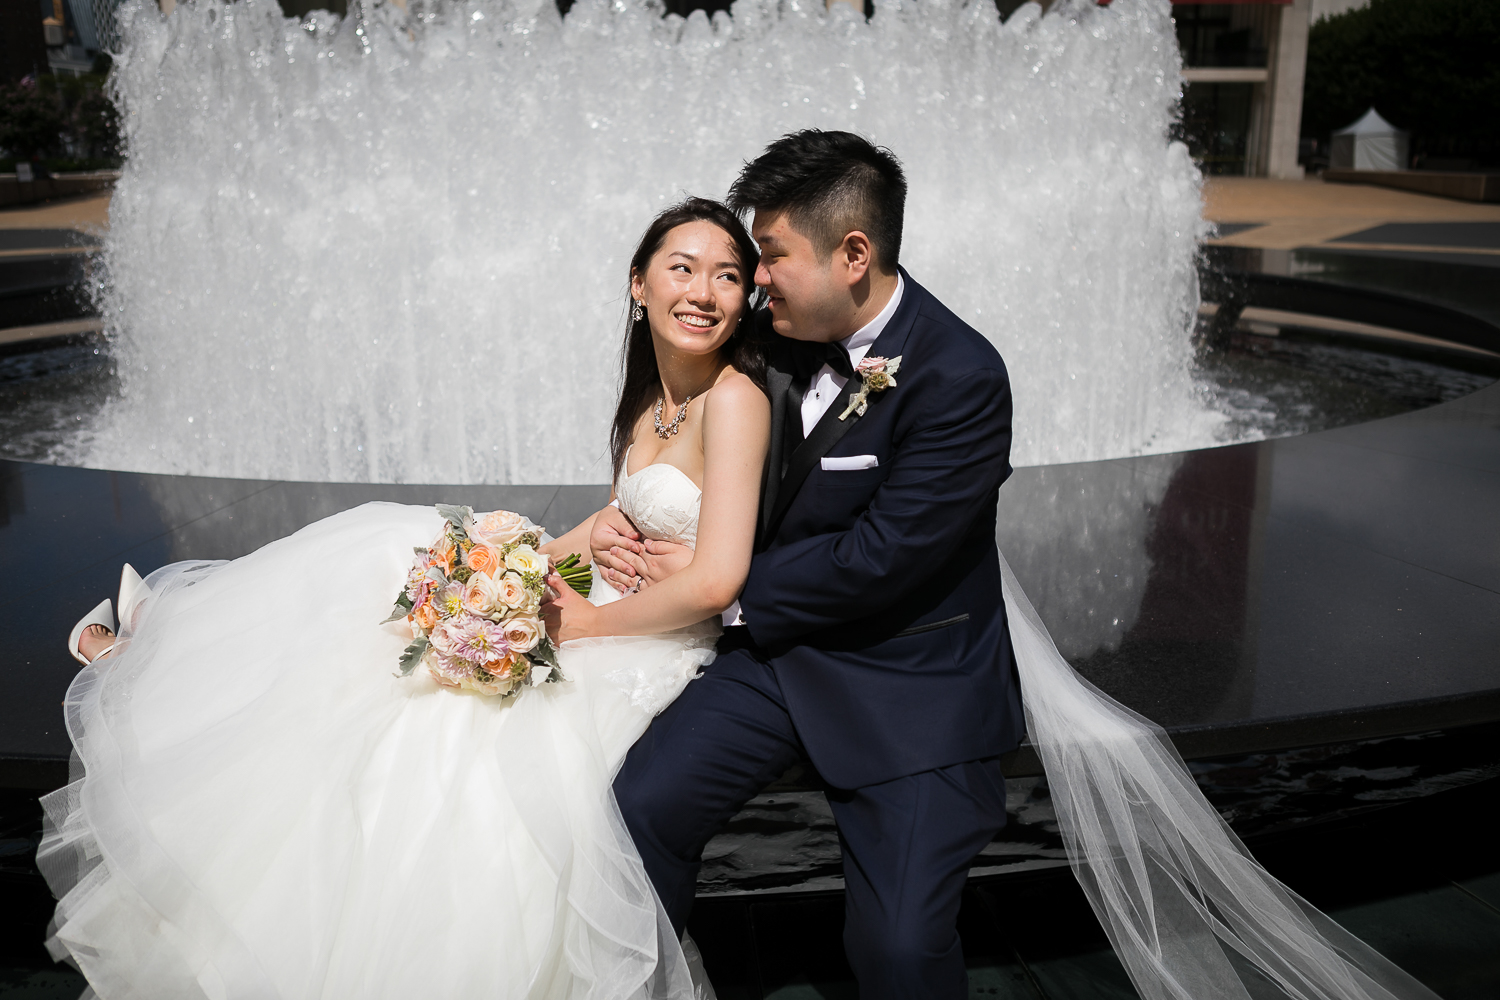 Portrait of a couple posing for wedding portraits in front of the fountain at Lincoln Center in New York City | Lincoln Center Wedding Photos | Jason and Susanna's Glam NYC Elopement